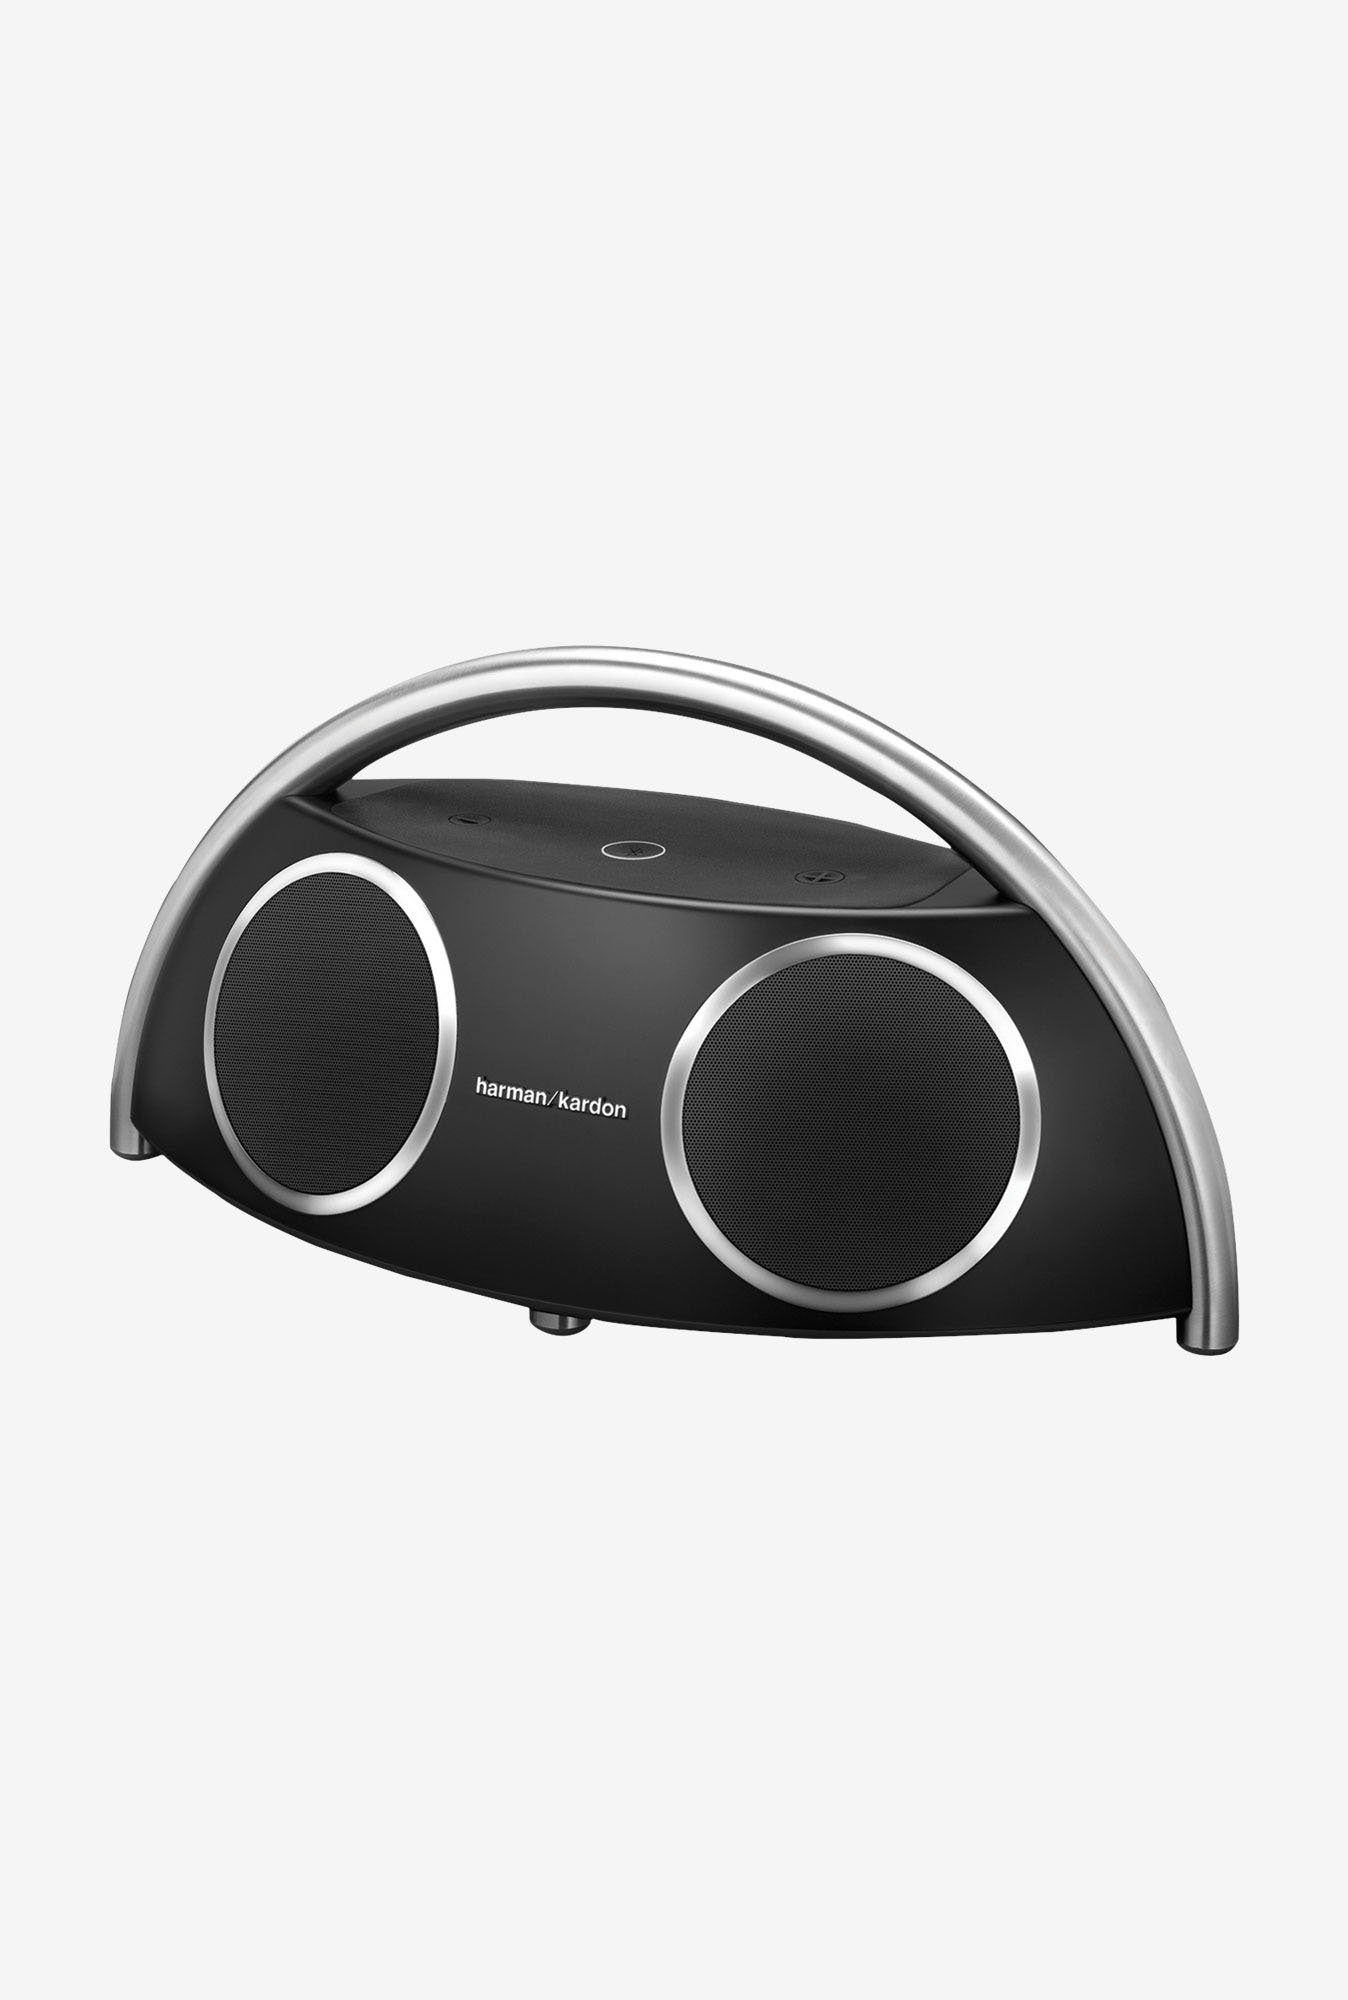 harman kardon drive and play. harman kardon go play bluetooth speaker black drive and